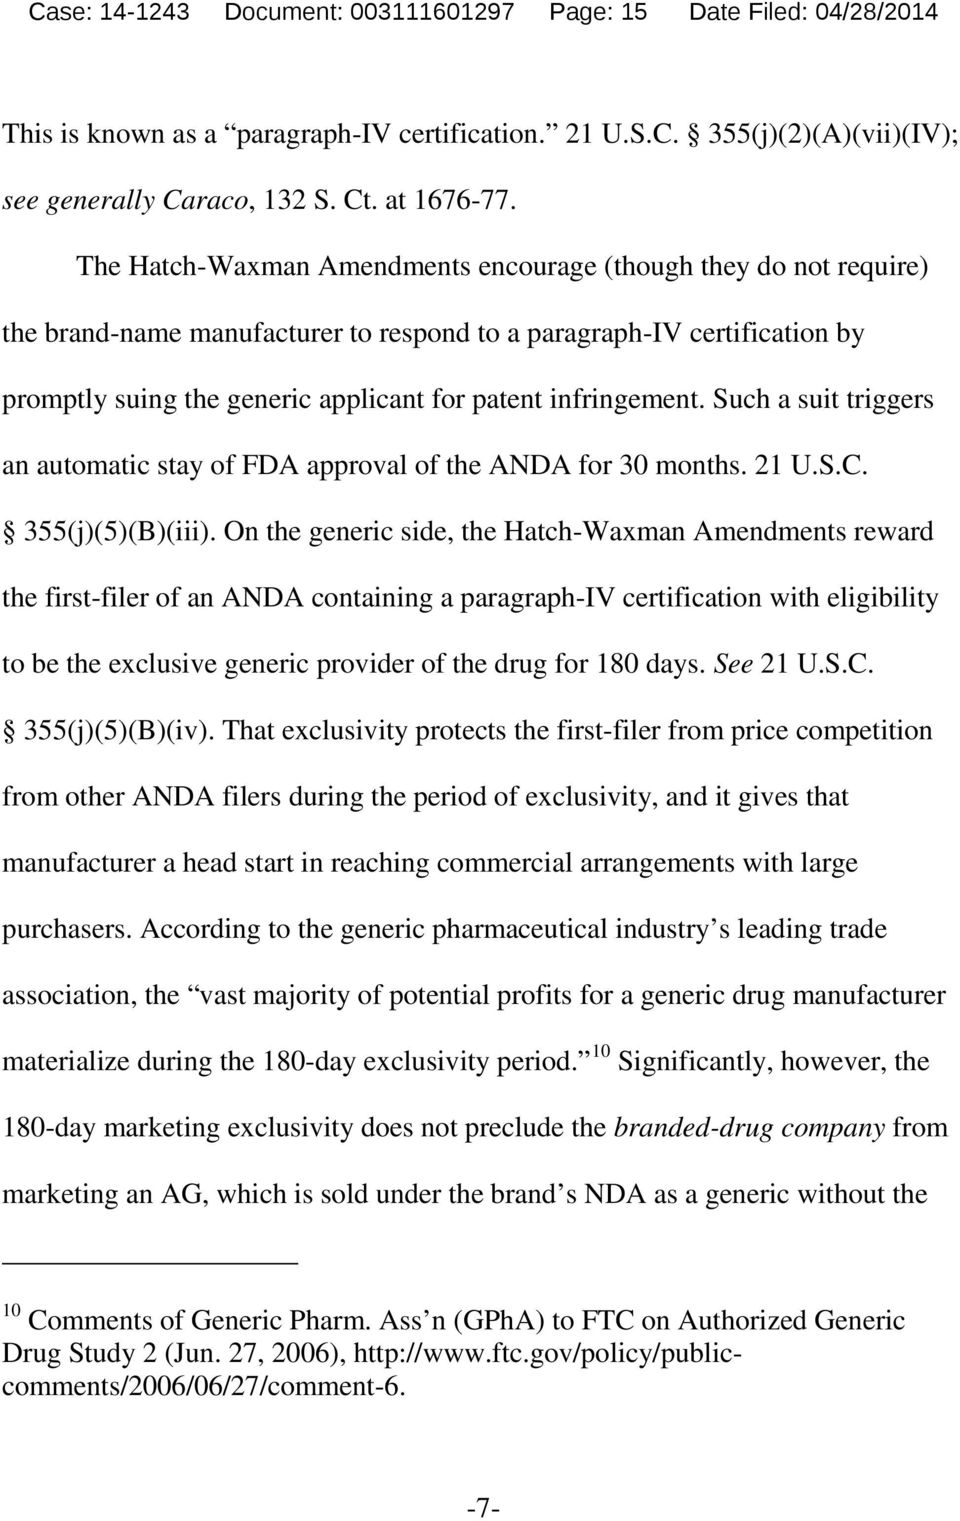 infringement. Such a suit triggers an automatic stay of FDA approval of the ANDA for 30 months. 21 U.S.C. 355(j)(5)(B)(iii).